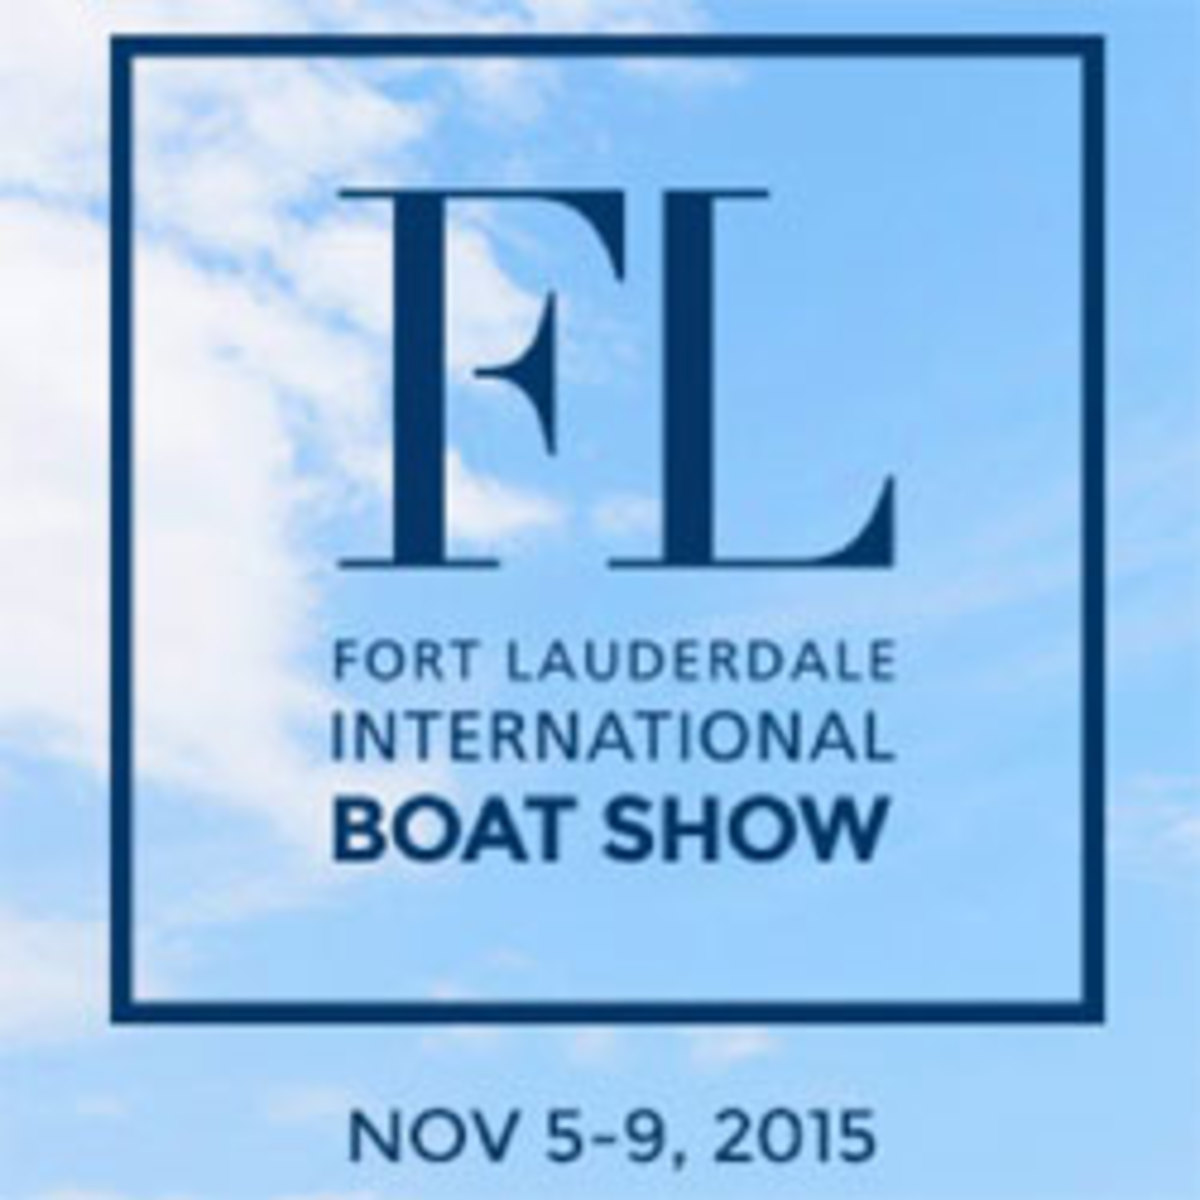 Ft Lauderdale International Boat Show logo